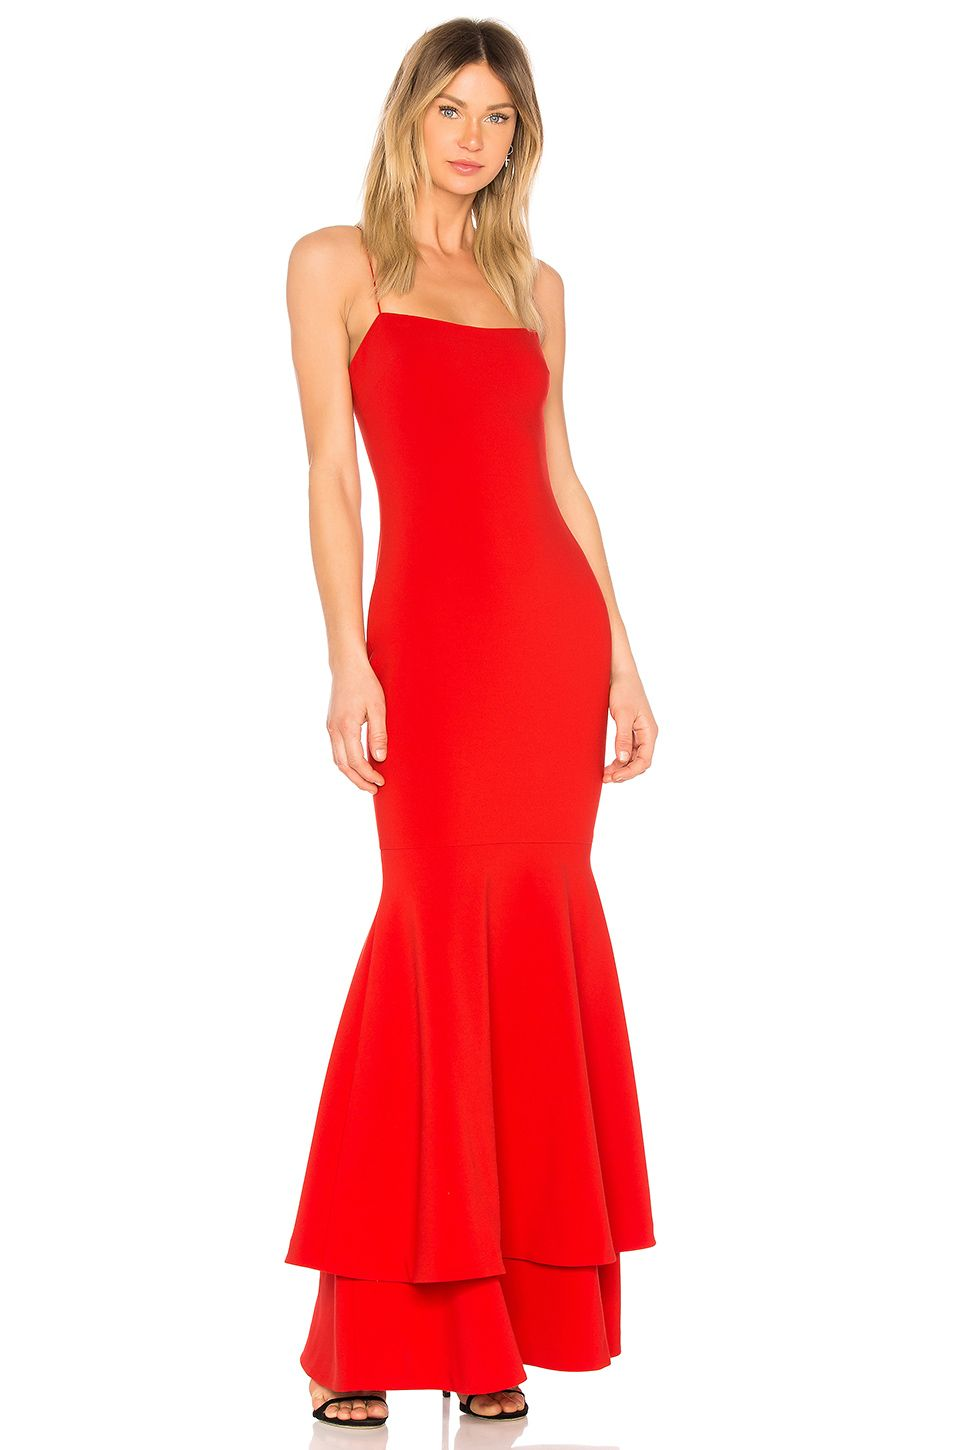 3c7694a8982a4 LIKELY AURORA GOWN.  likely  cloth